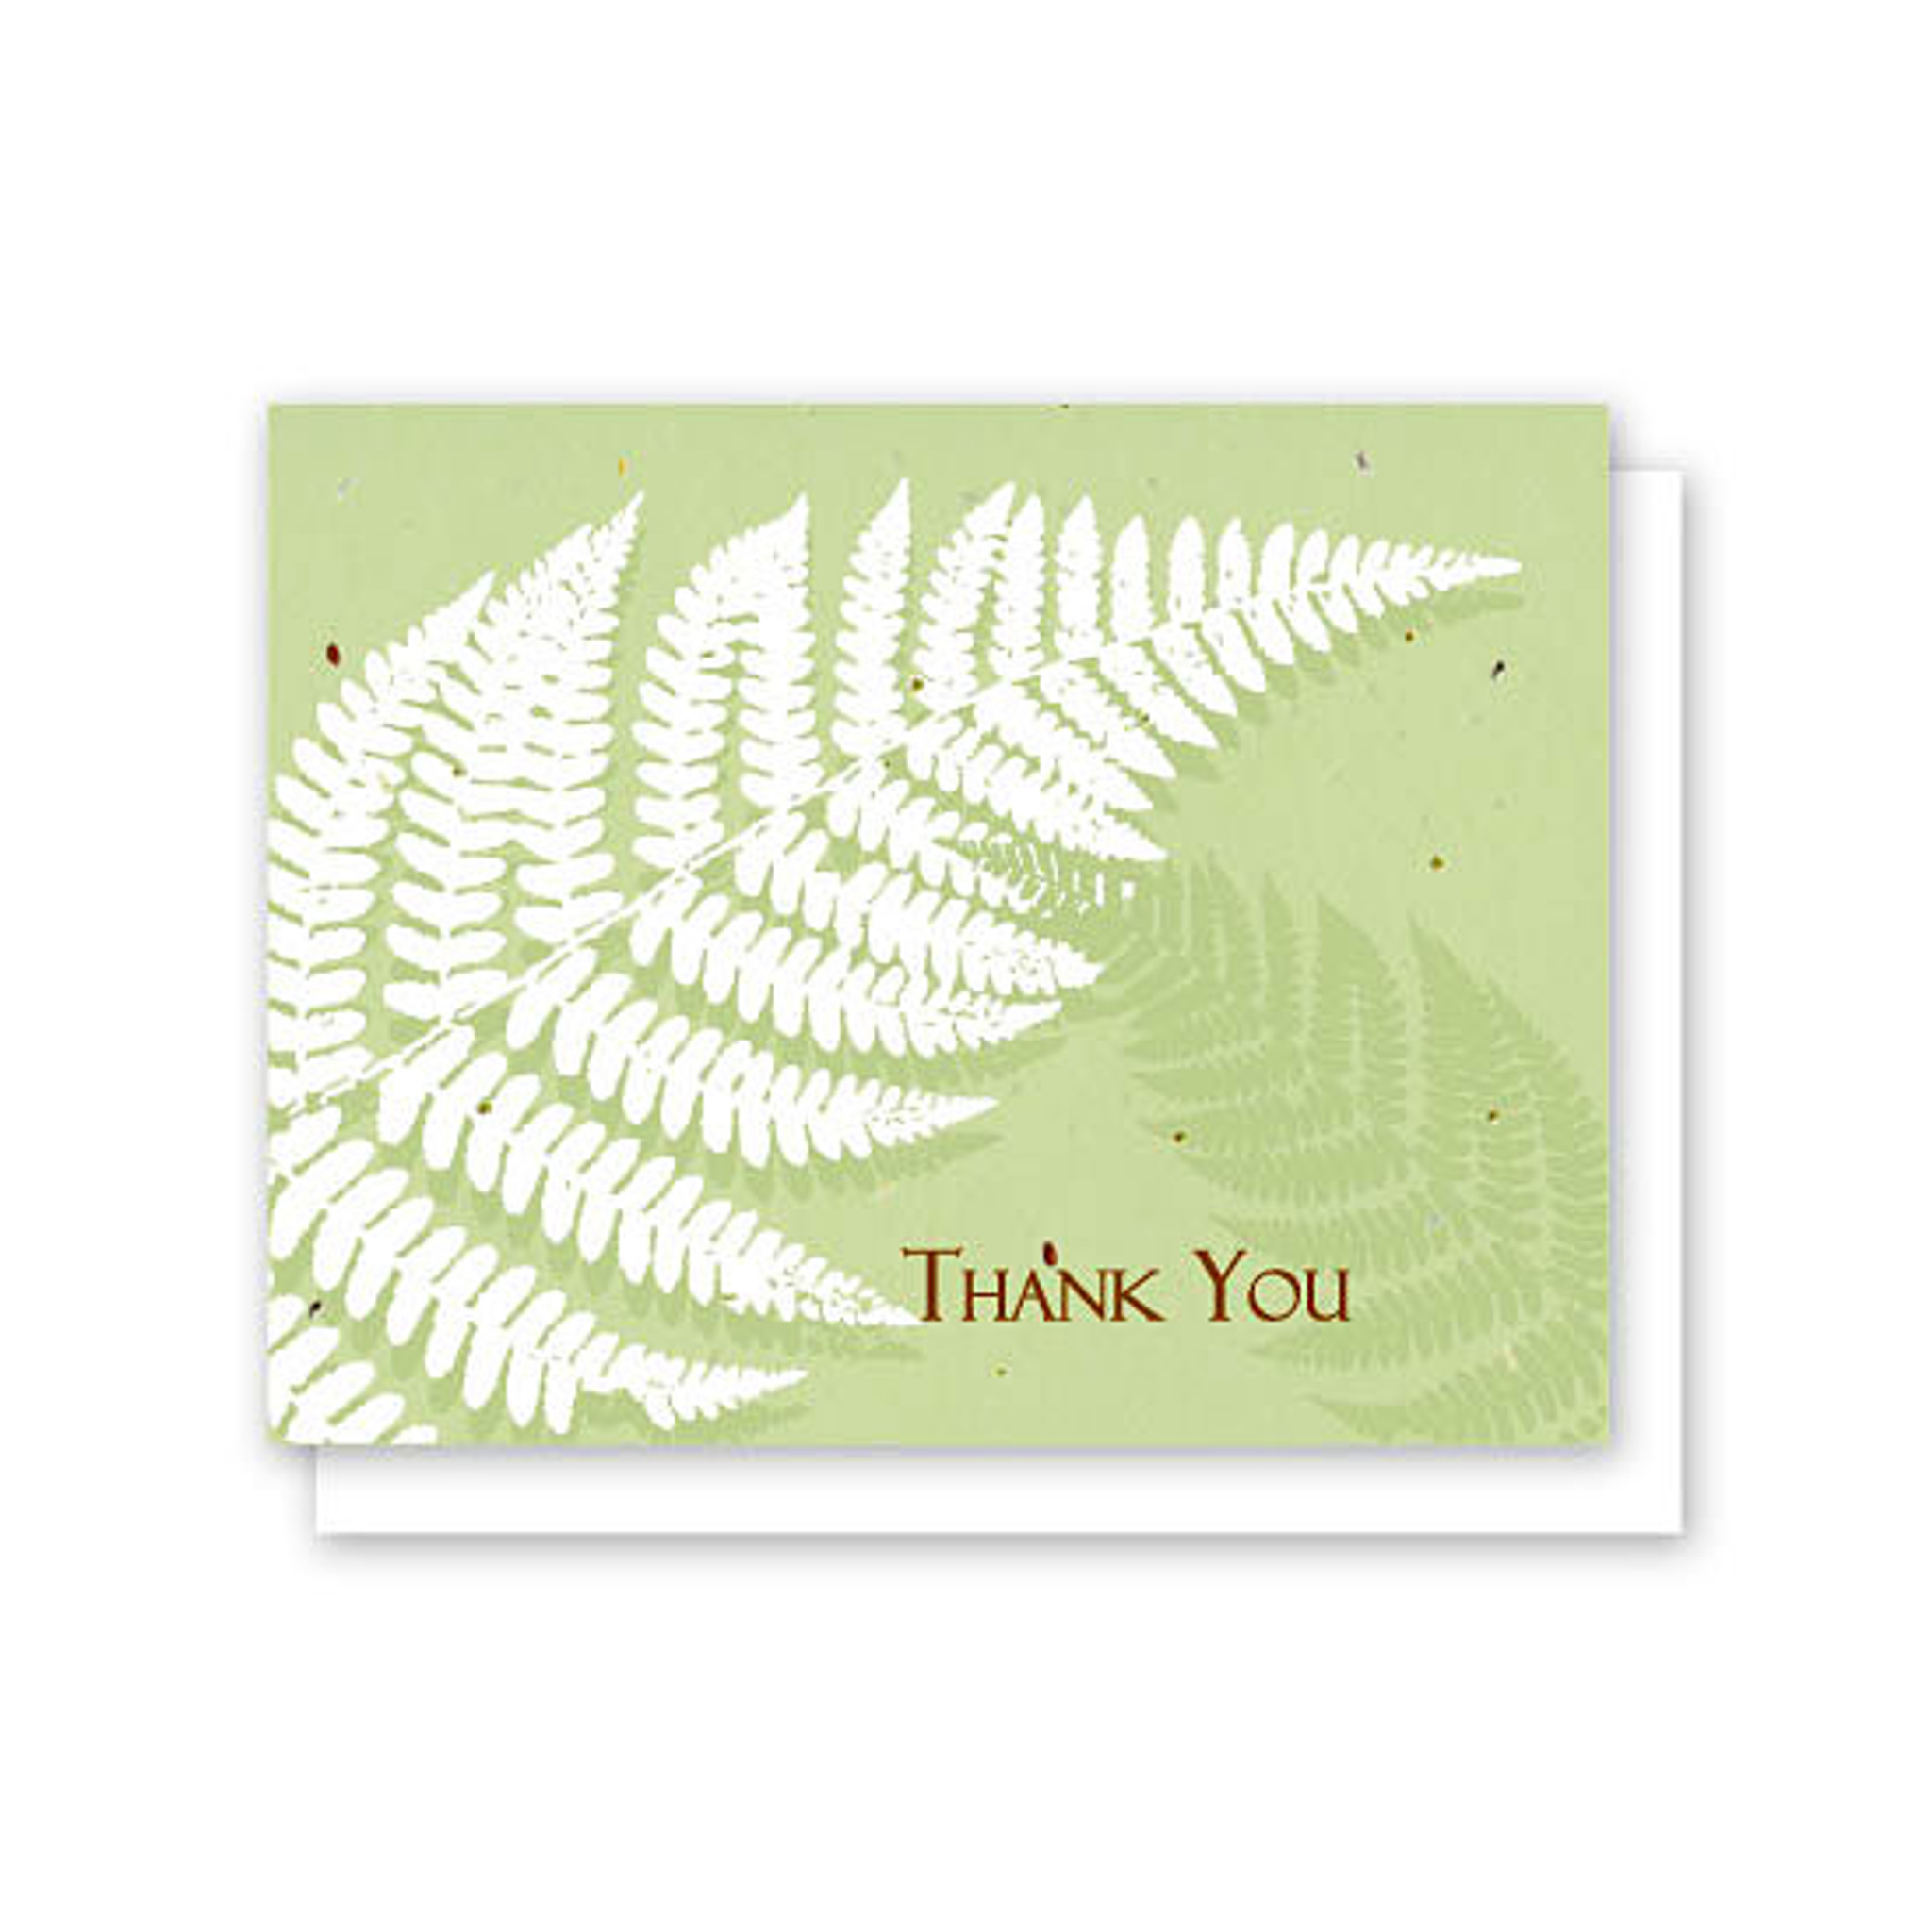 CHOOSE YOUR QUANTITY Garden Edition Set of NotesEnvelopes on Recycled Cardstock Thank You